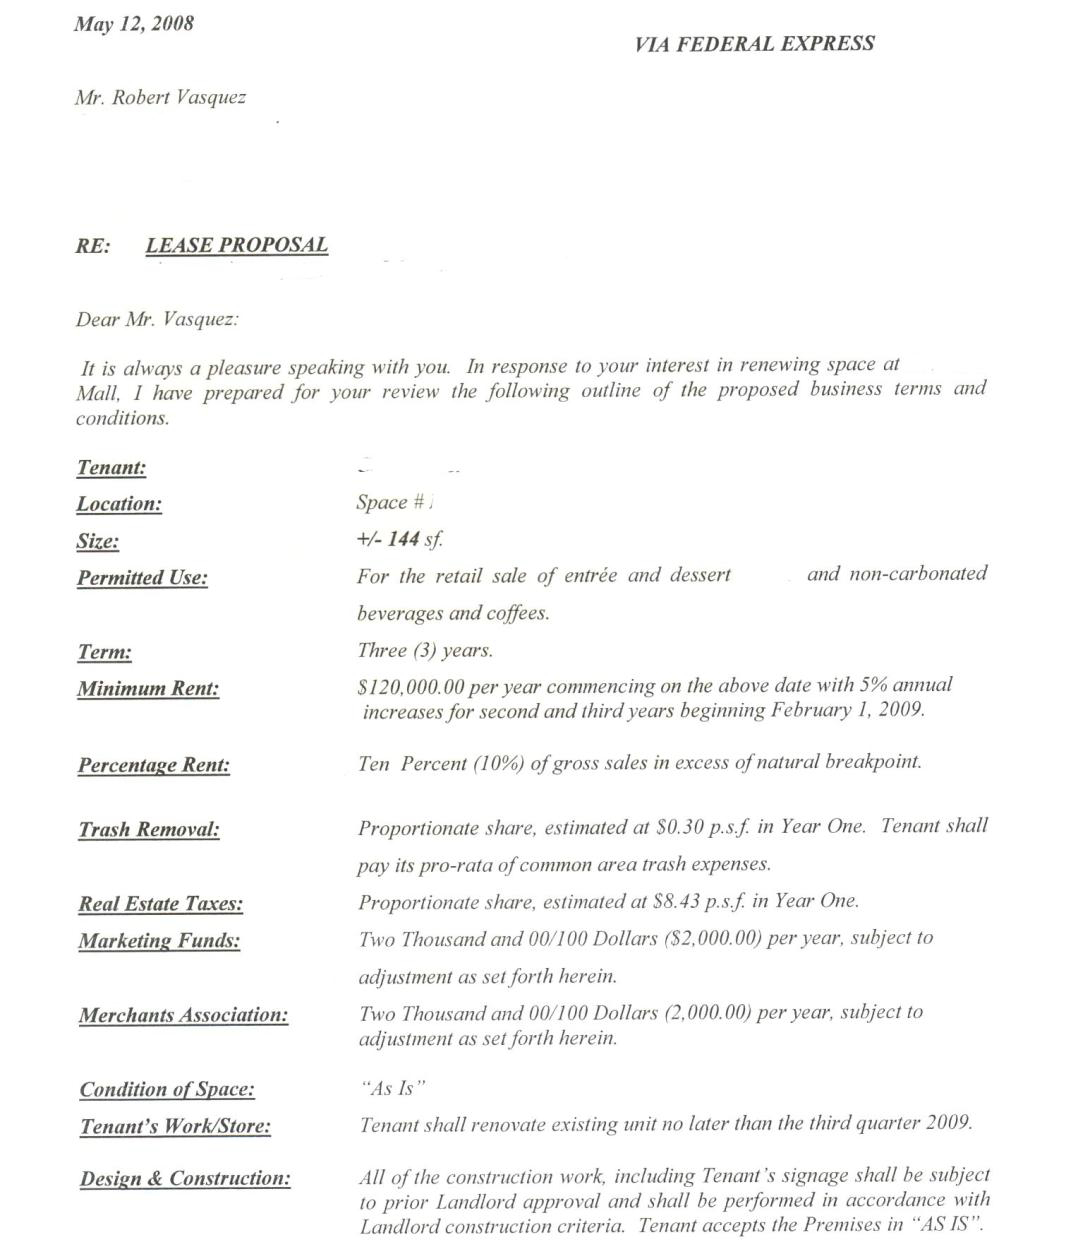 Breaking Lease Agreement Letter Template - Intent to Break Lease Letter Fice Space Template Property